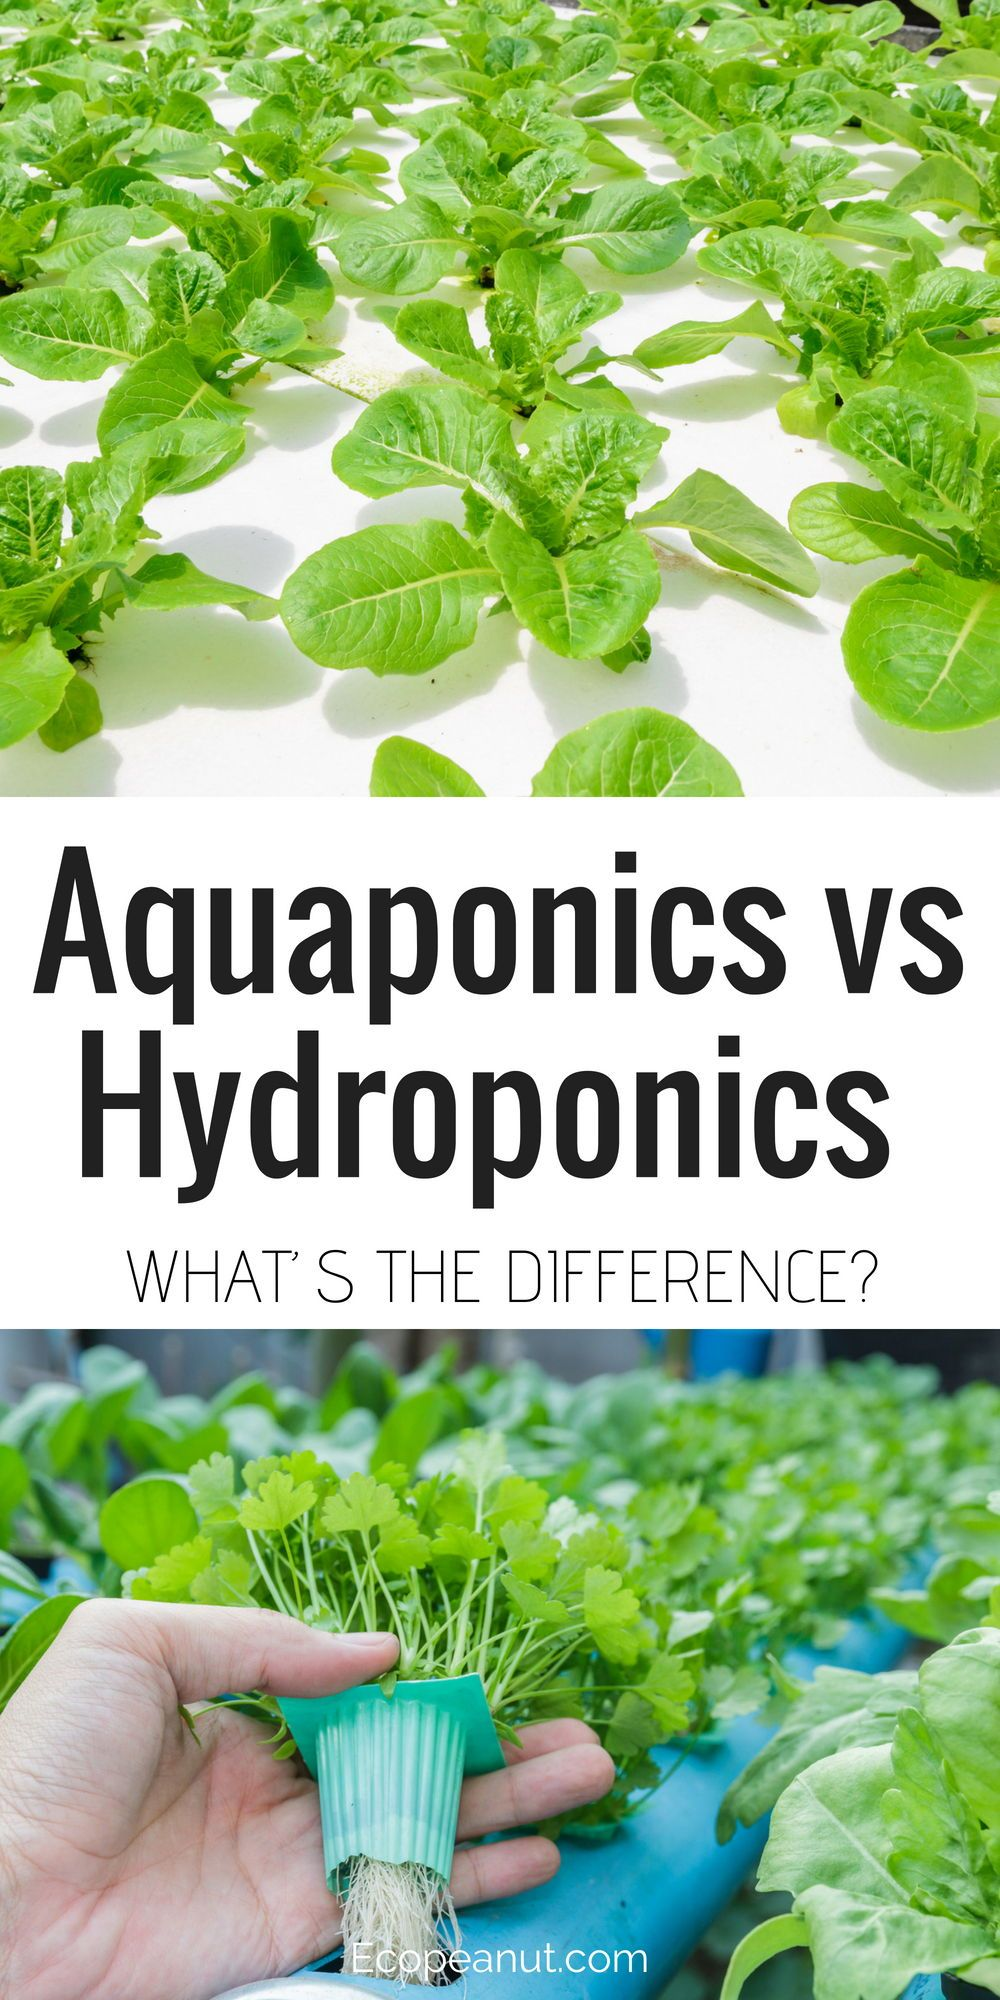 Hydroponics Or Aquaponics  What Is Better  To Find Out More, Click Here! is part of Hydroponics - Are You Interested In Growing Your Own Food  Wondering What Is The Difference Between Aquaponics vs Hydroponics  We Tell You What You Need To Know! Get Started NOW And Learn How To Build A System Right Here!